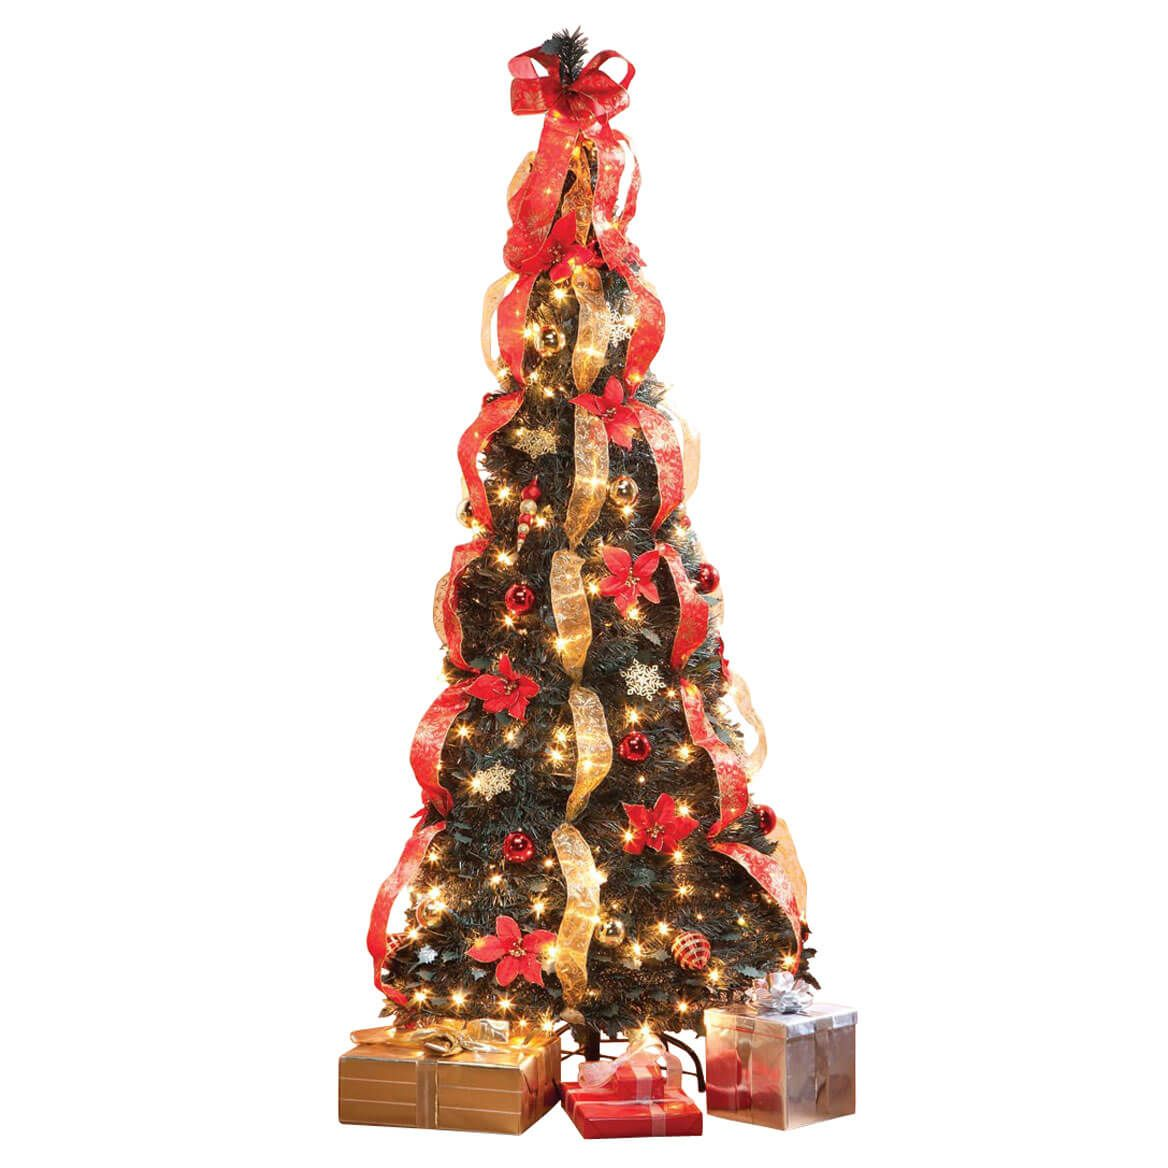 7' Red Poinsettia Pull-Up Tree by Holiday Peak™     XL-357693